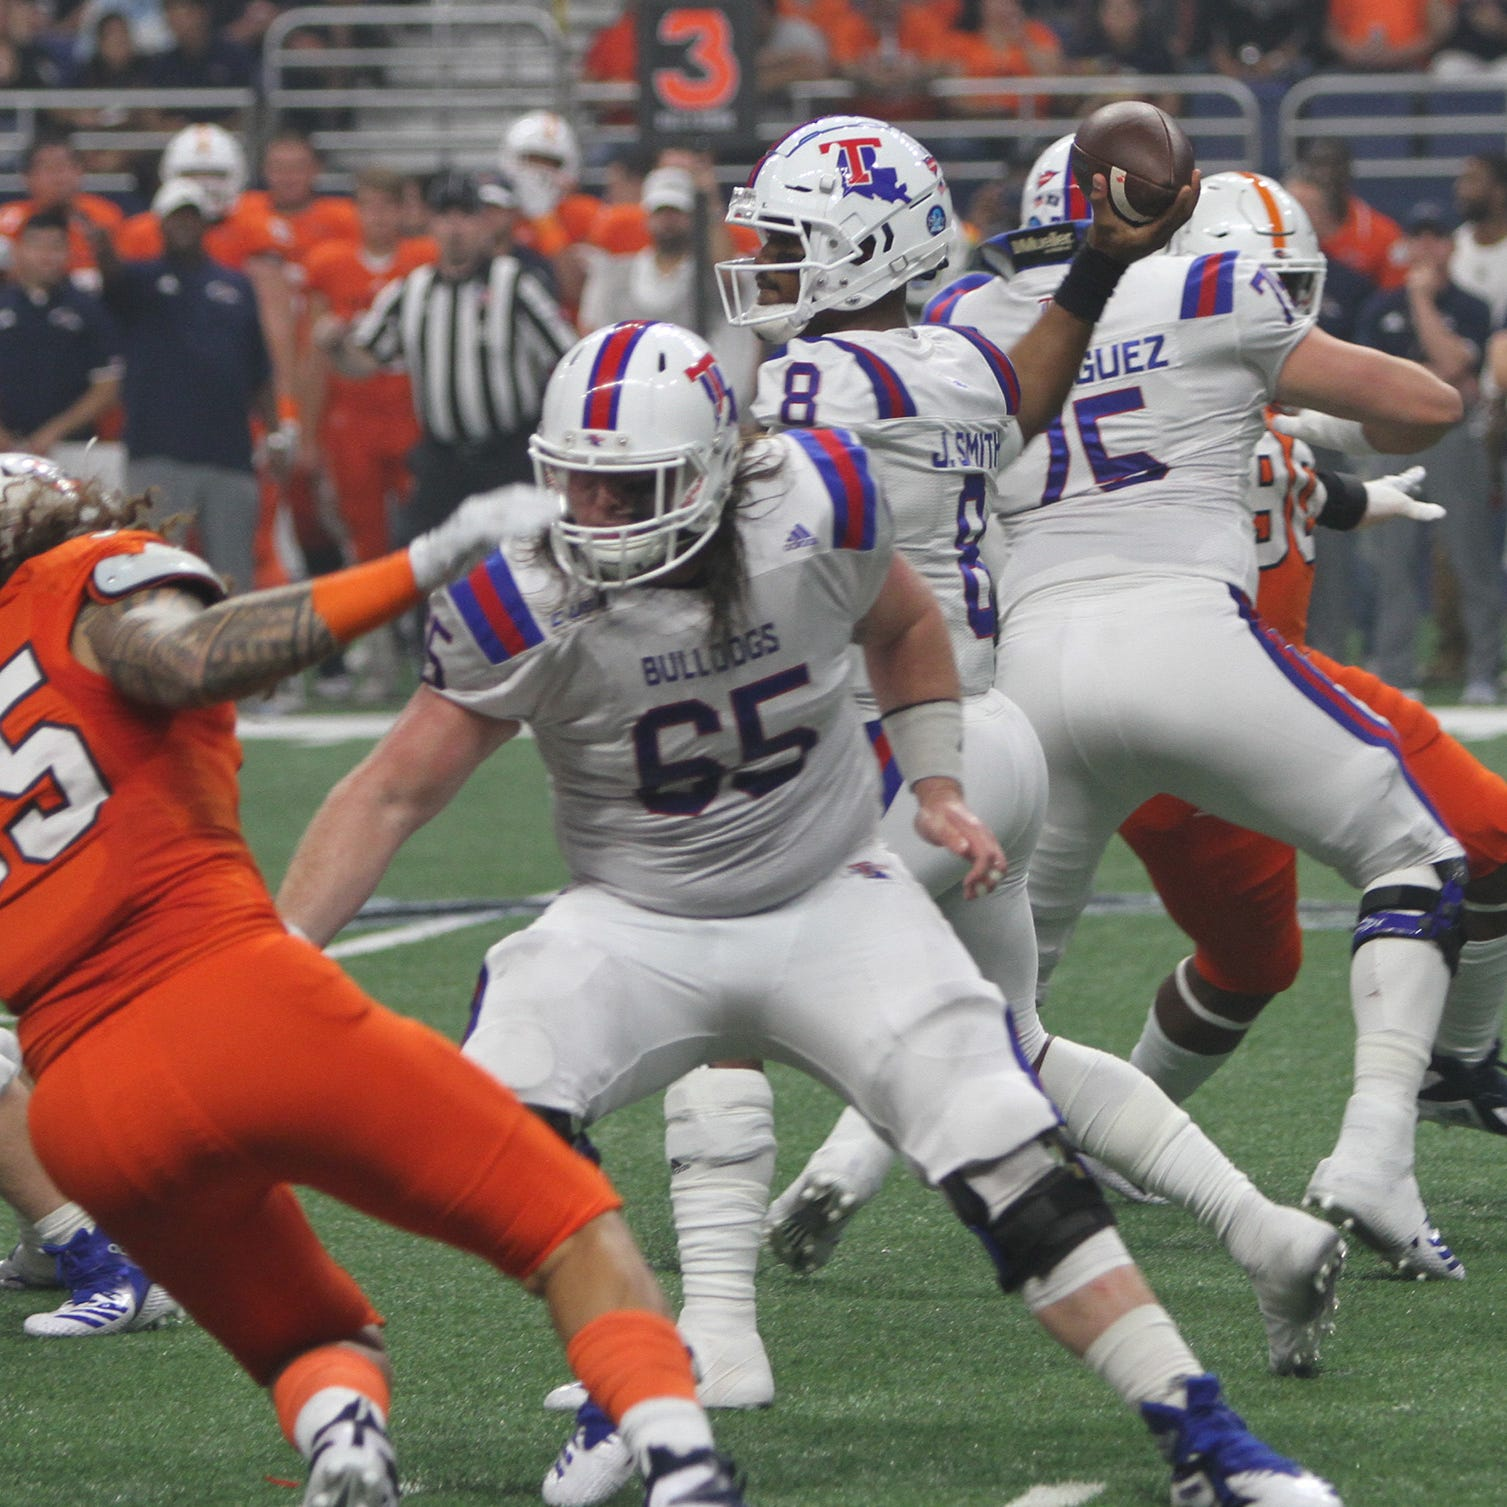 Louisiana Tech doesn't want to overlook UTEP